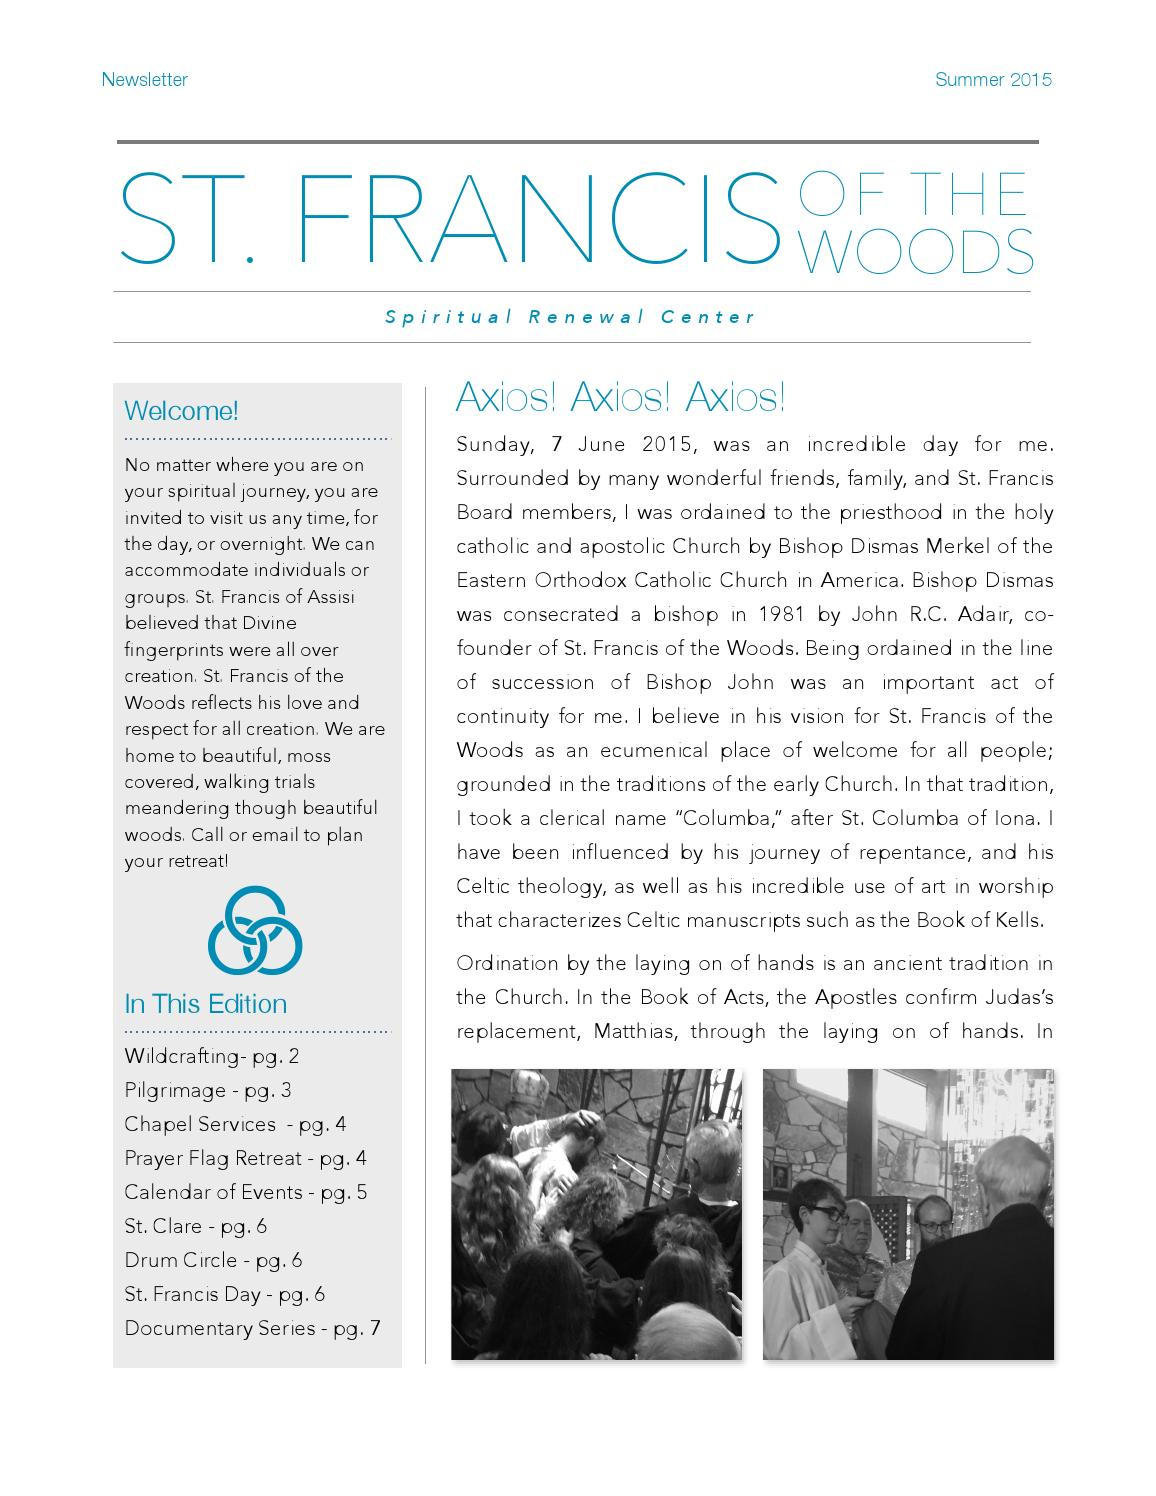 Newsletter summer 2015 by St  Francis of the Woods - issuu